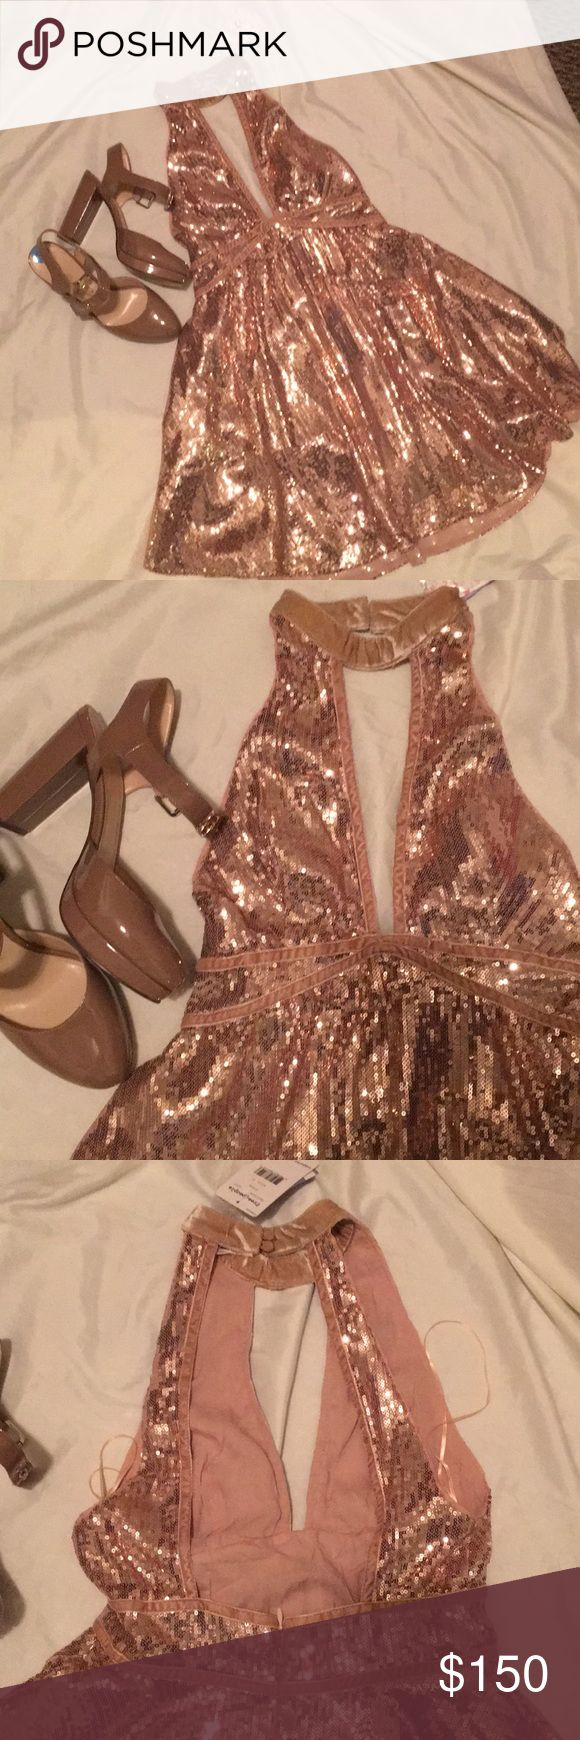 Free People Rose sequences dress size 0 & heels Beautiful beautiful beautiful - perfect for New Years and heels to match!  Nine West  size 7.5.  Dress size 0z. All new - never worn Free People Dresses Mini